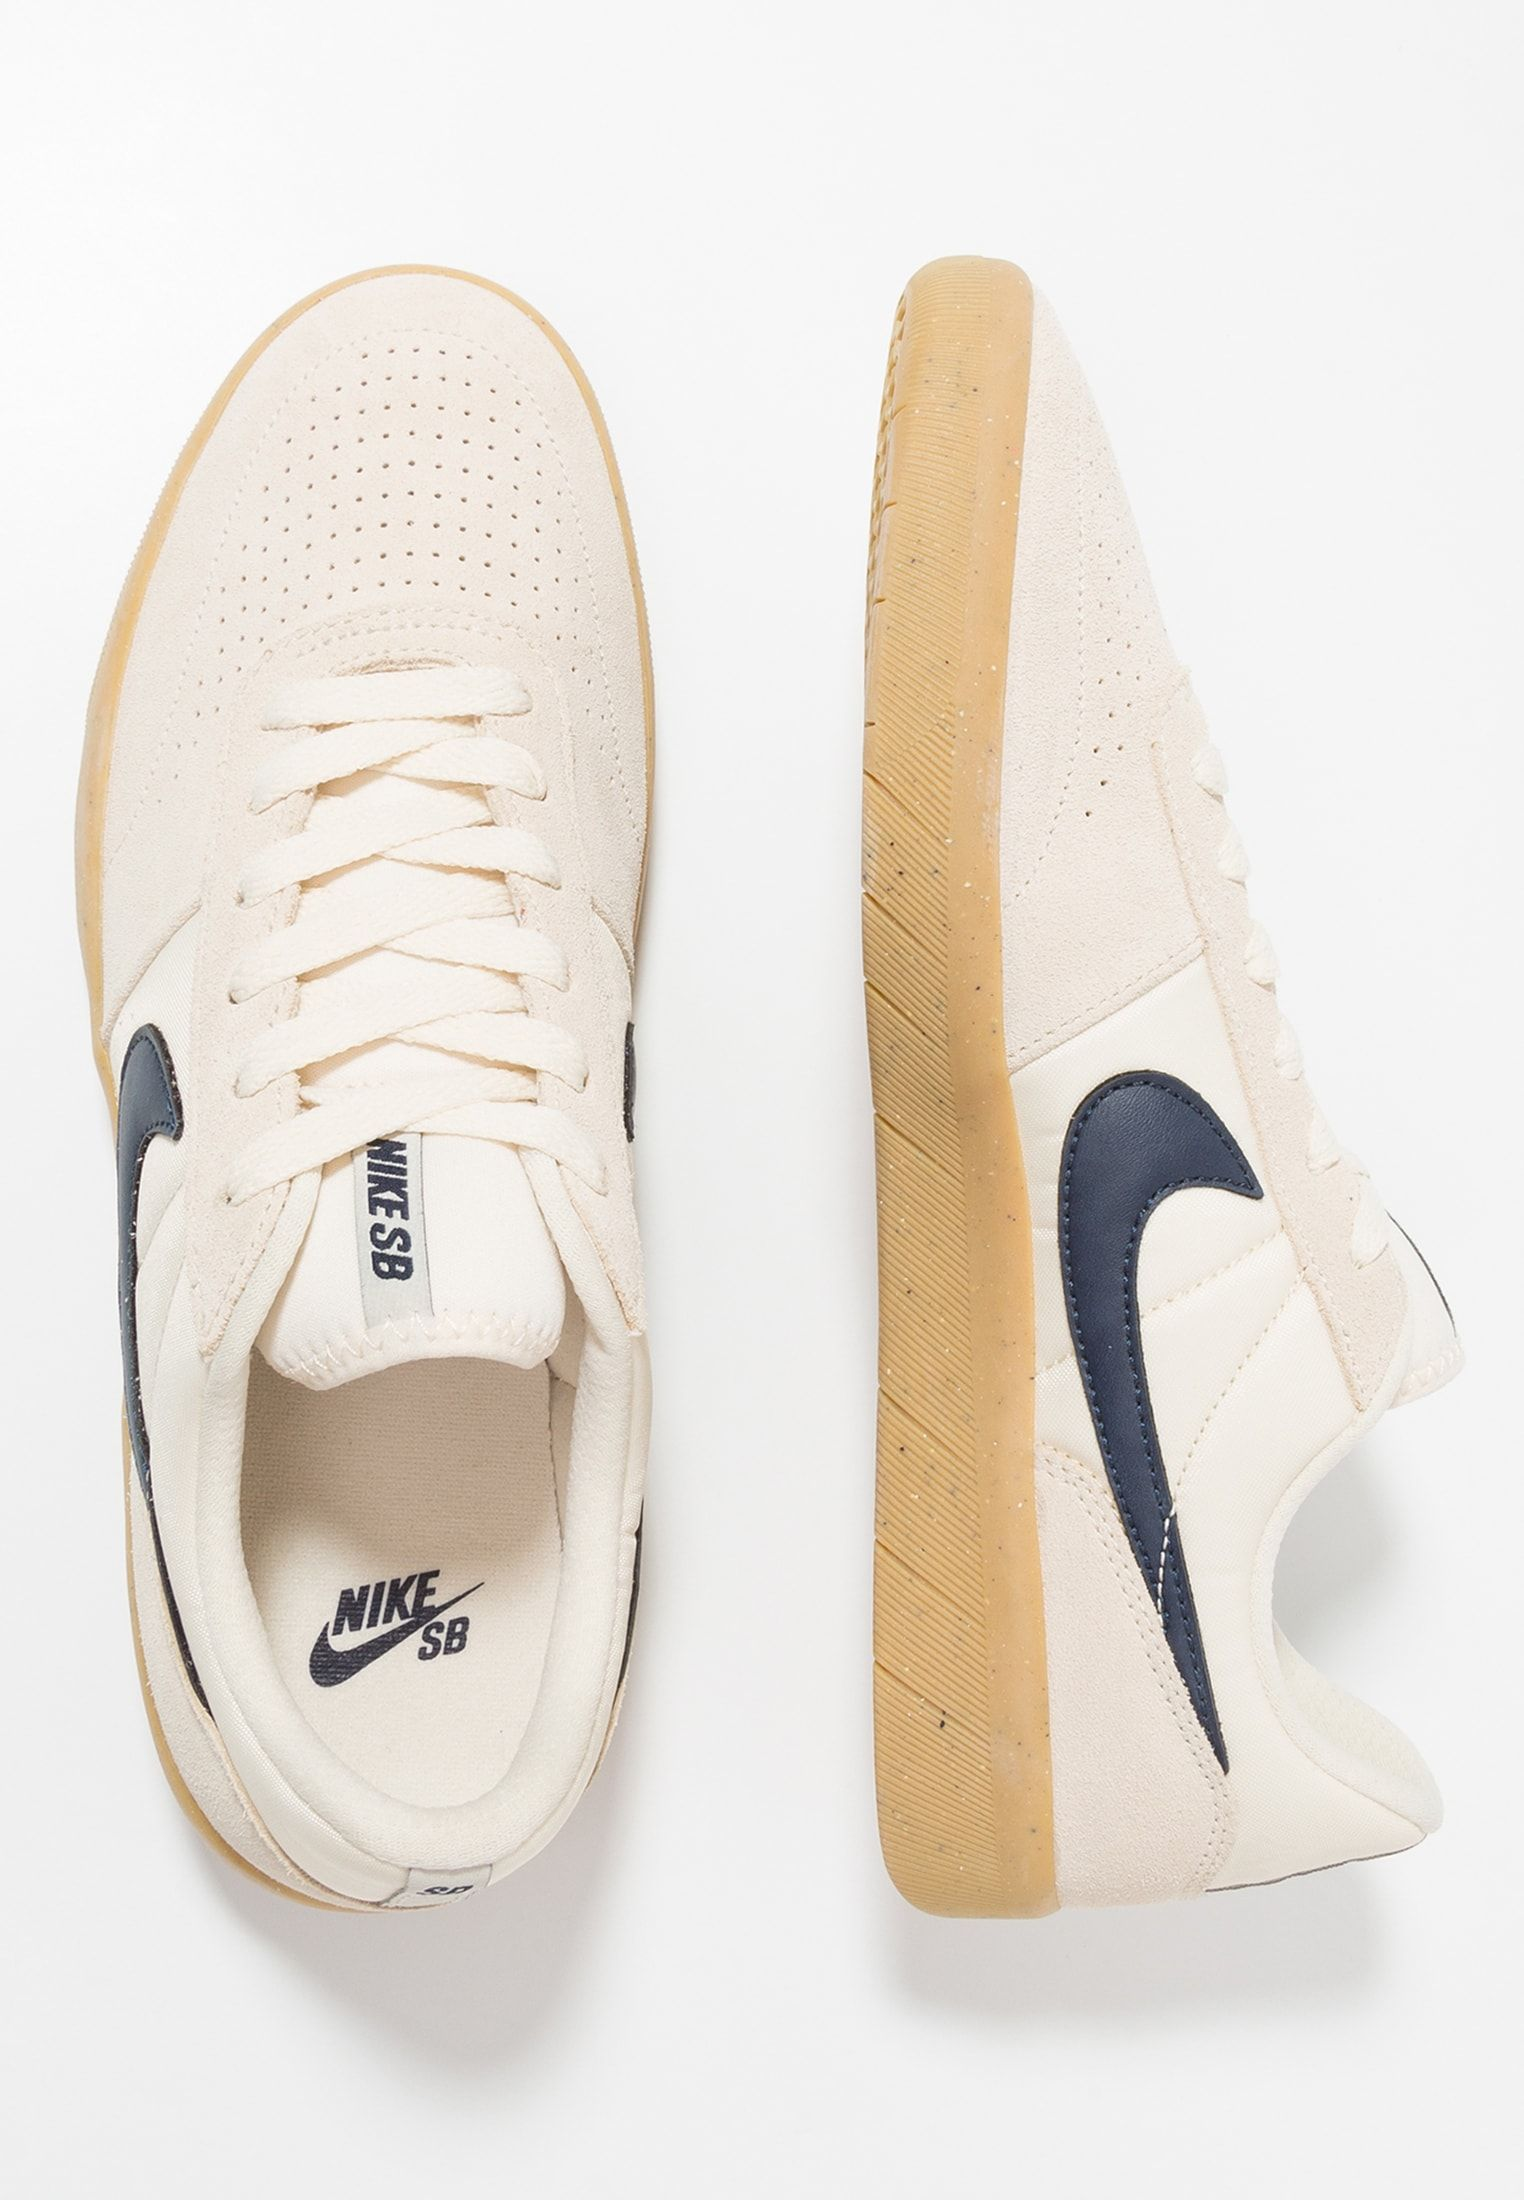 Nike SB TEAM CLASSIC Baskets basses light creamobsidian